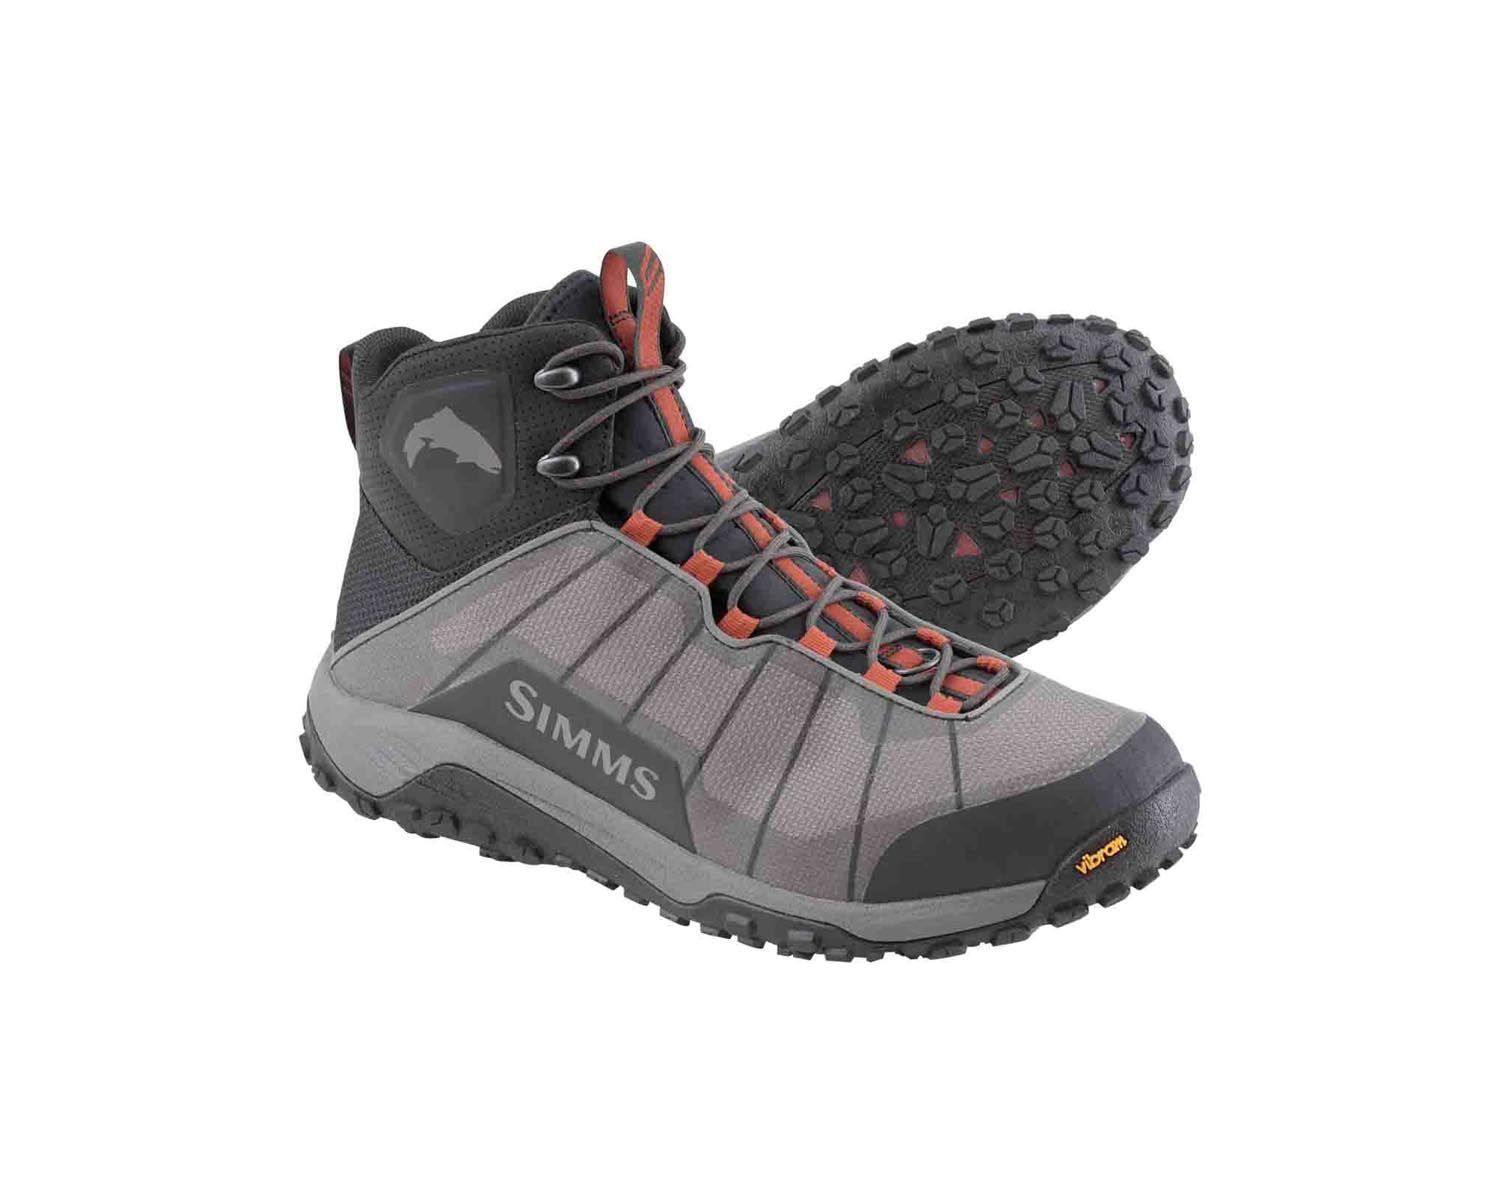 Flyweight Wading Boot - Rubber Sole - The TroutFitter Fly Shop